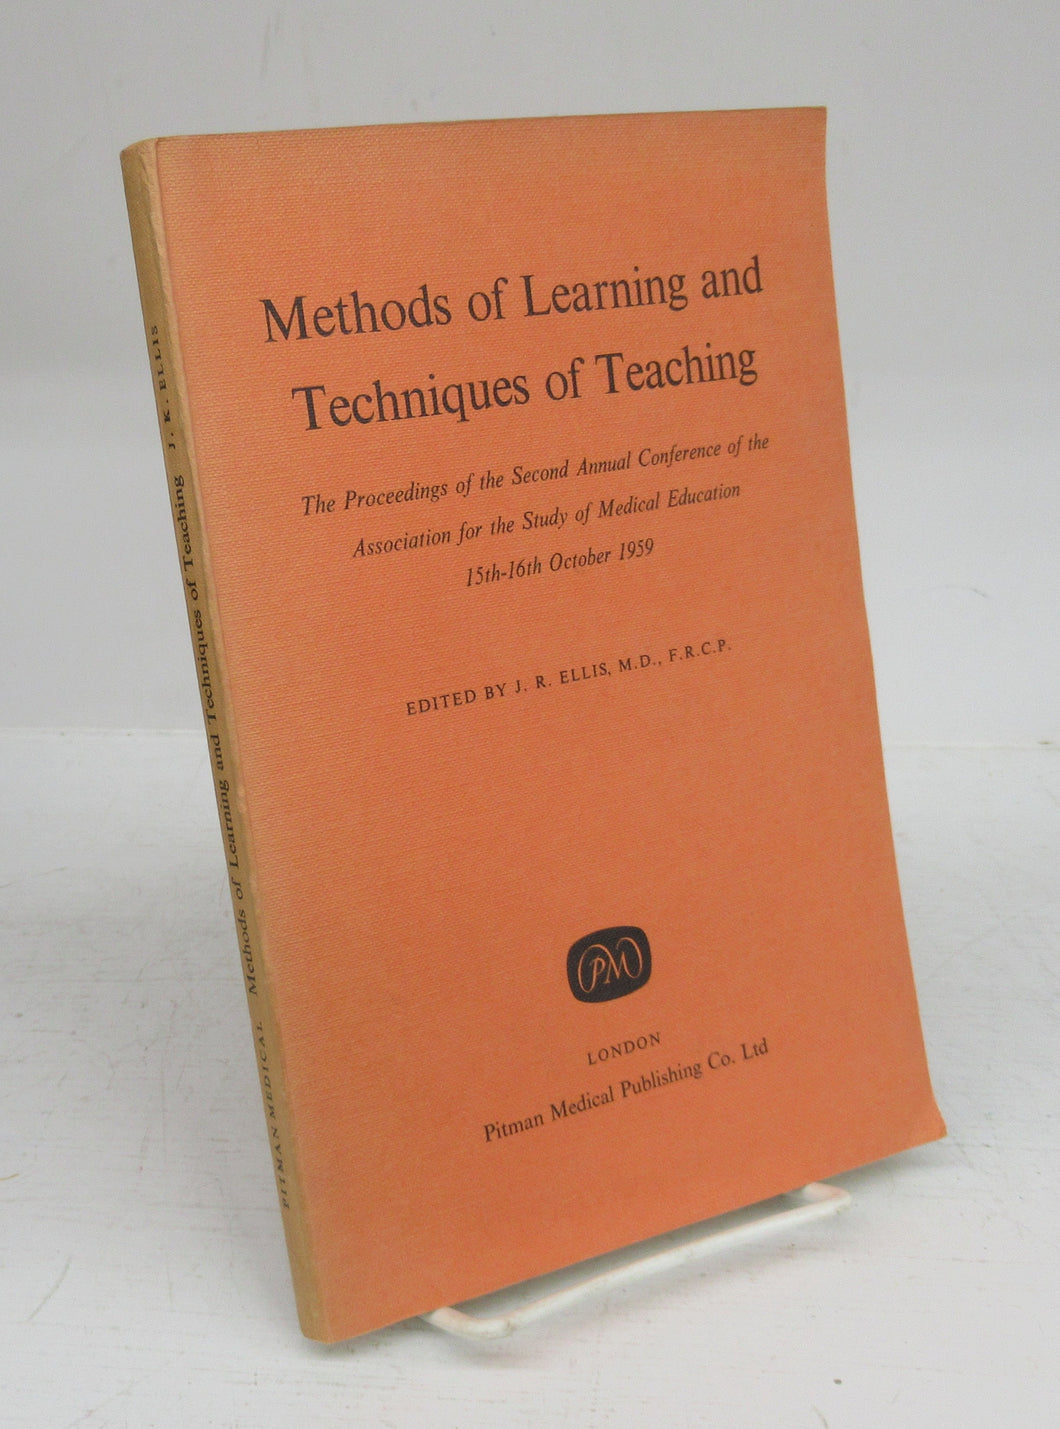 Methods of Learning and Techniques of Teaching: The Proceedings of the Second Annual Conference of the Association for the Study of Medical Education 15th-16th October 1959